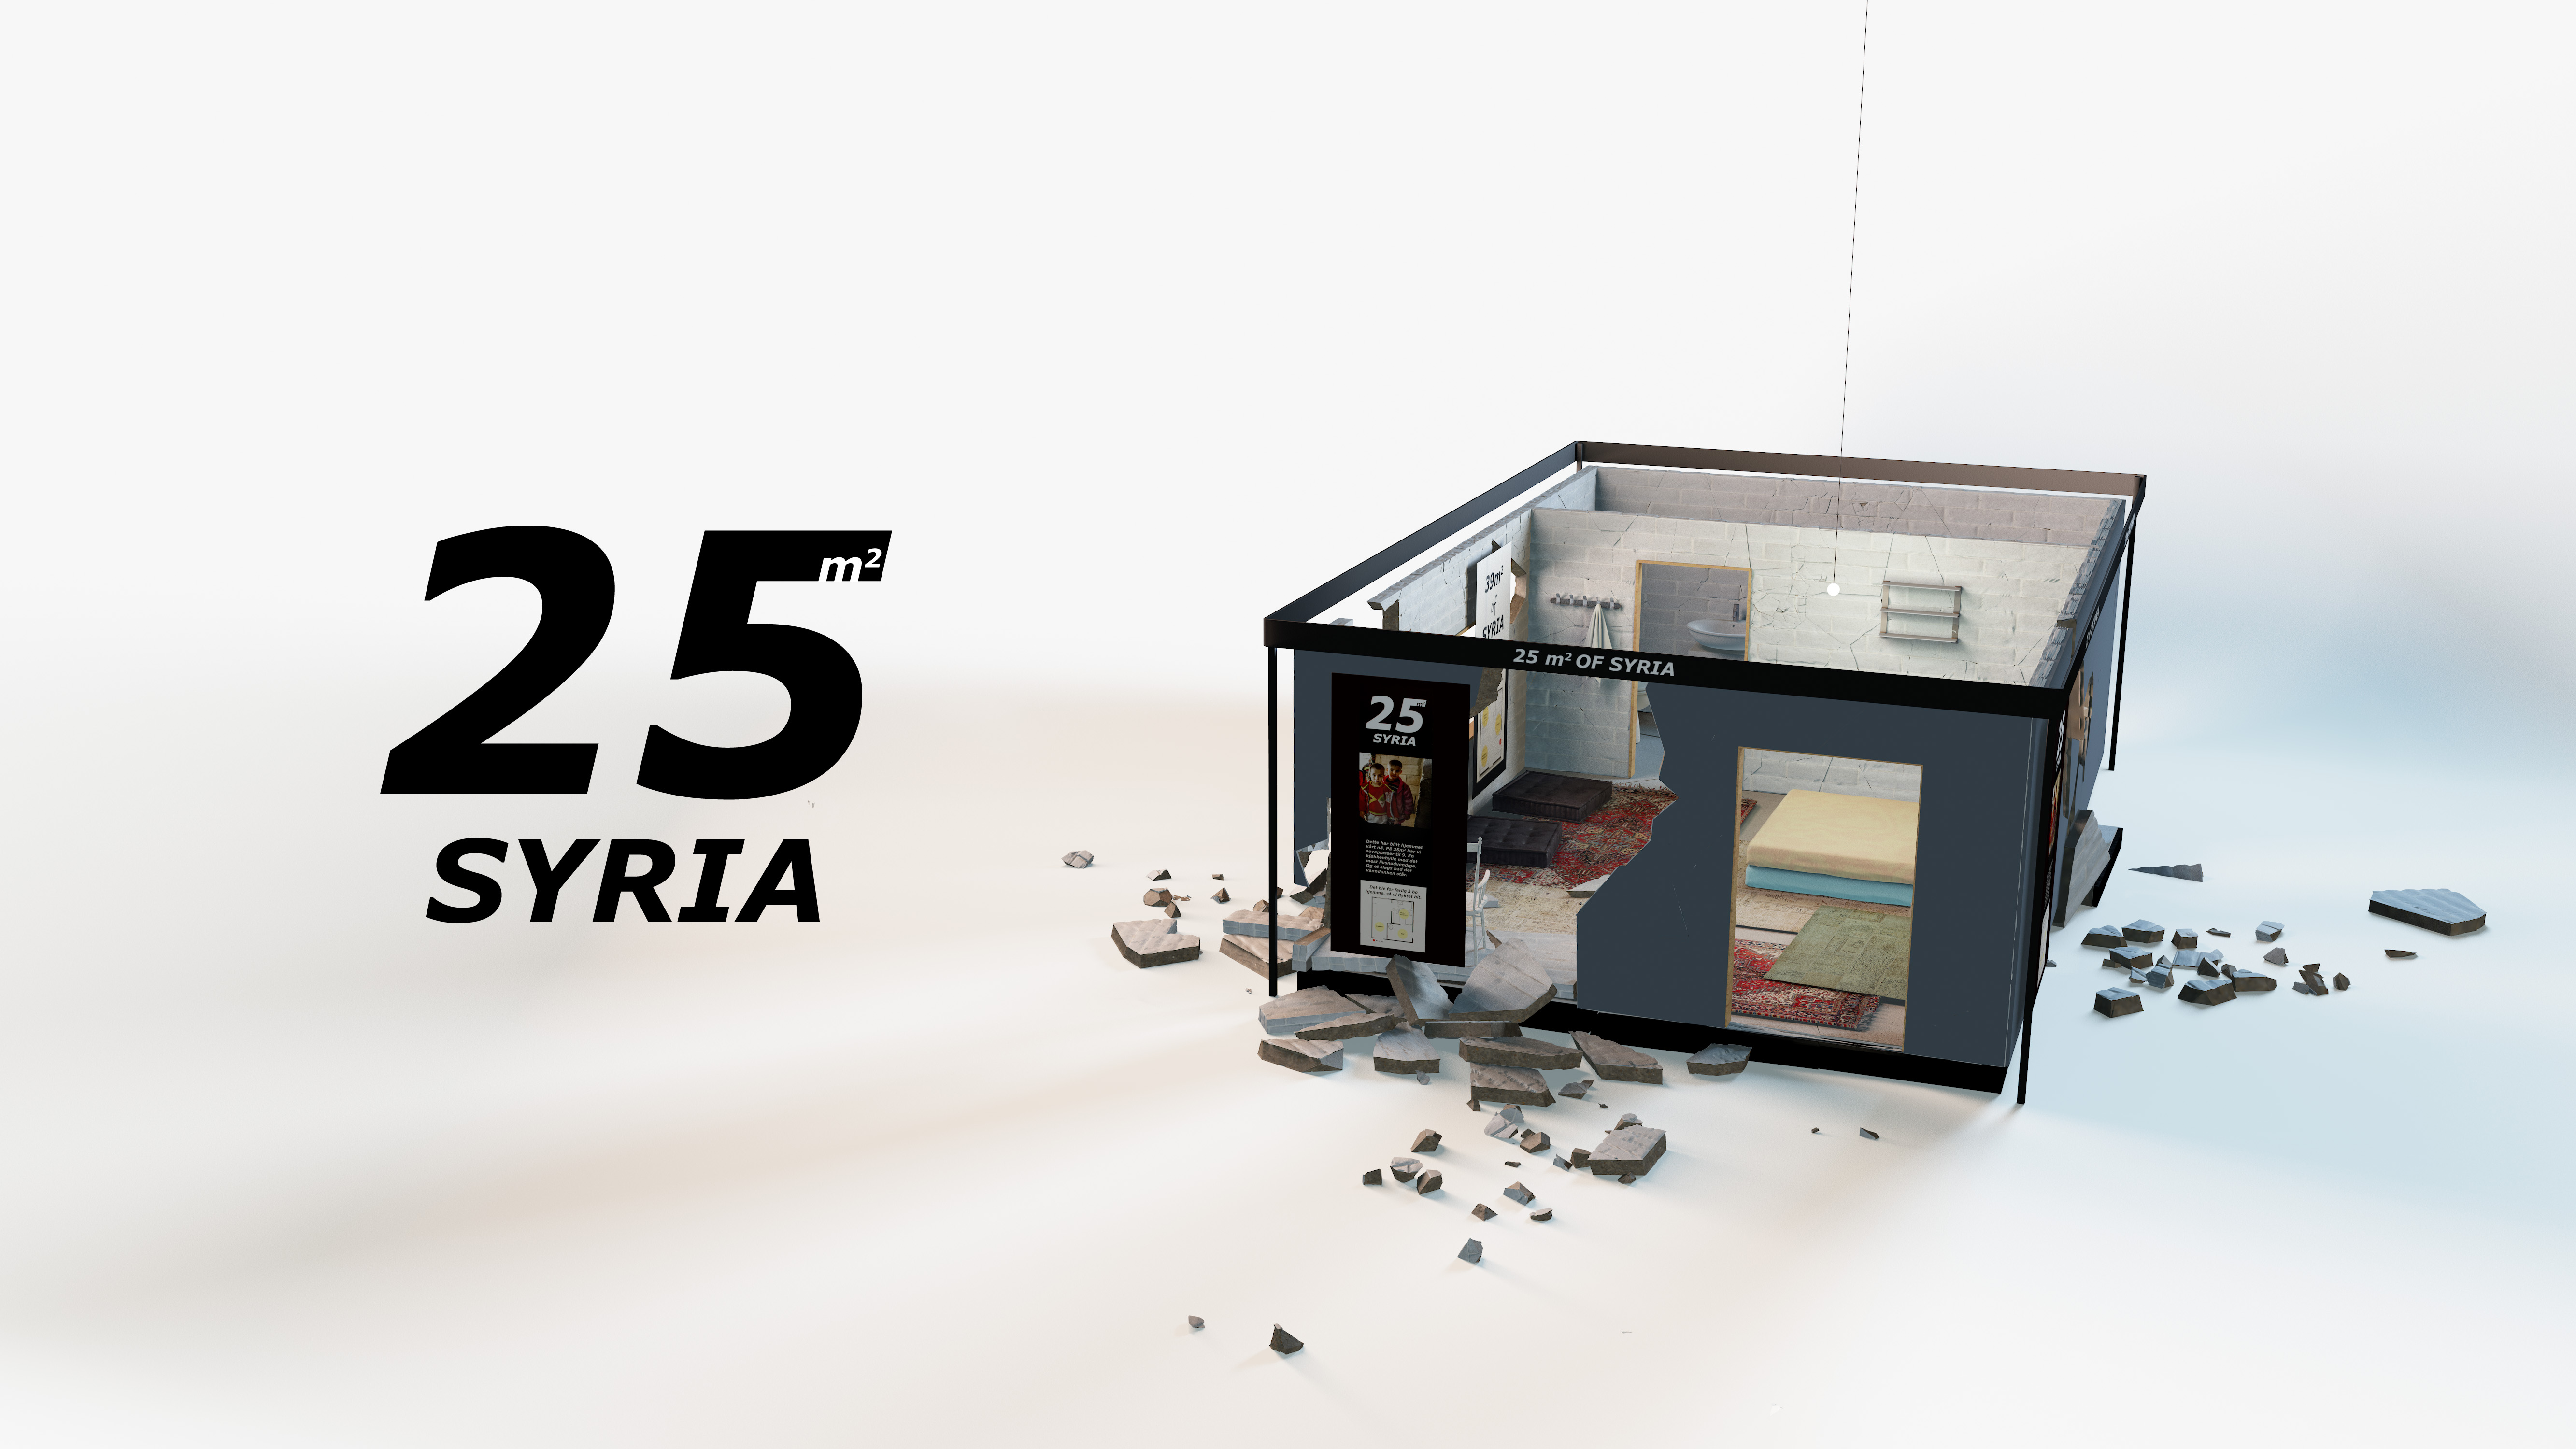 Thumbnail for 25m2 Syria